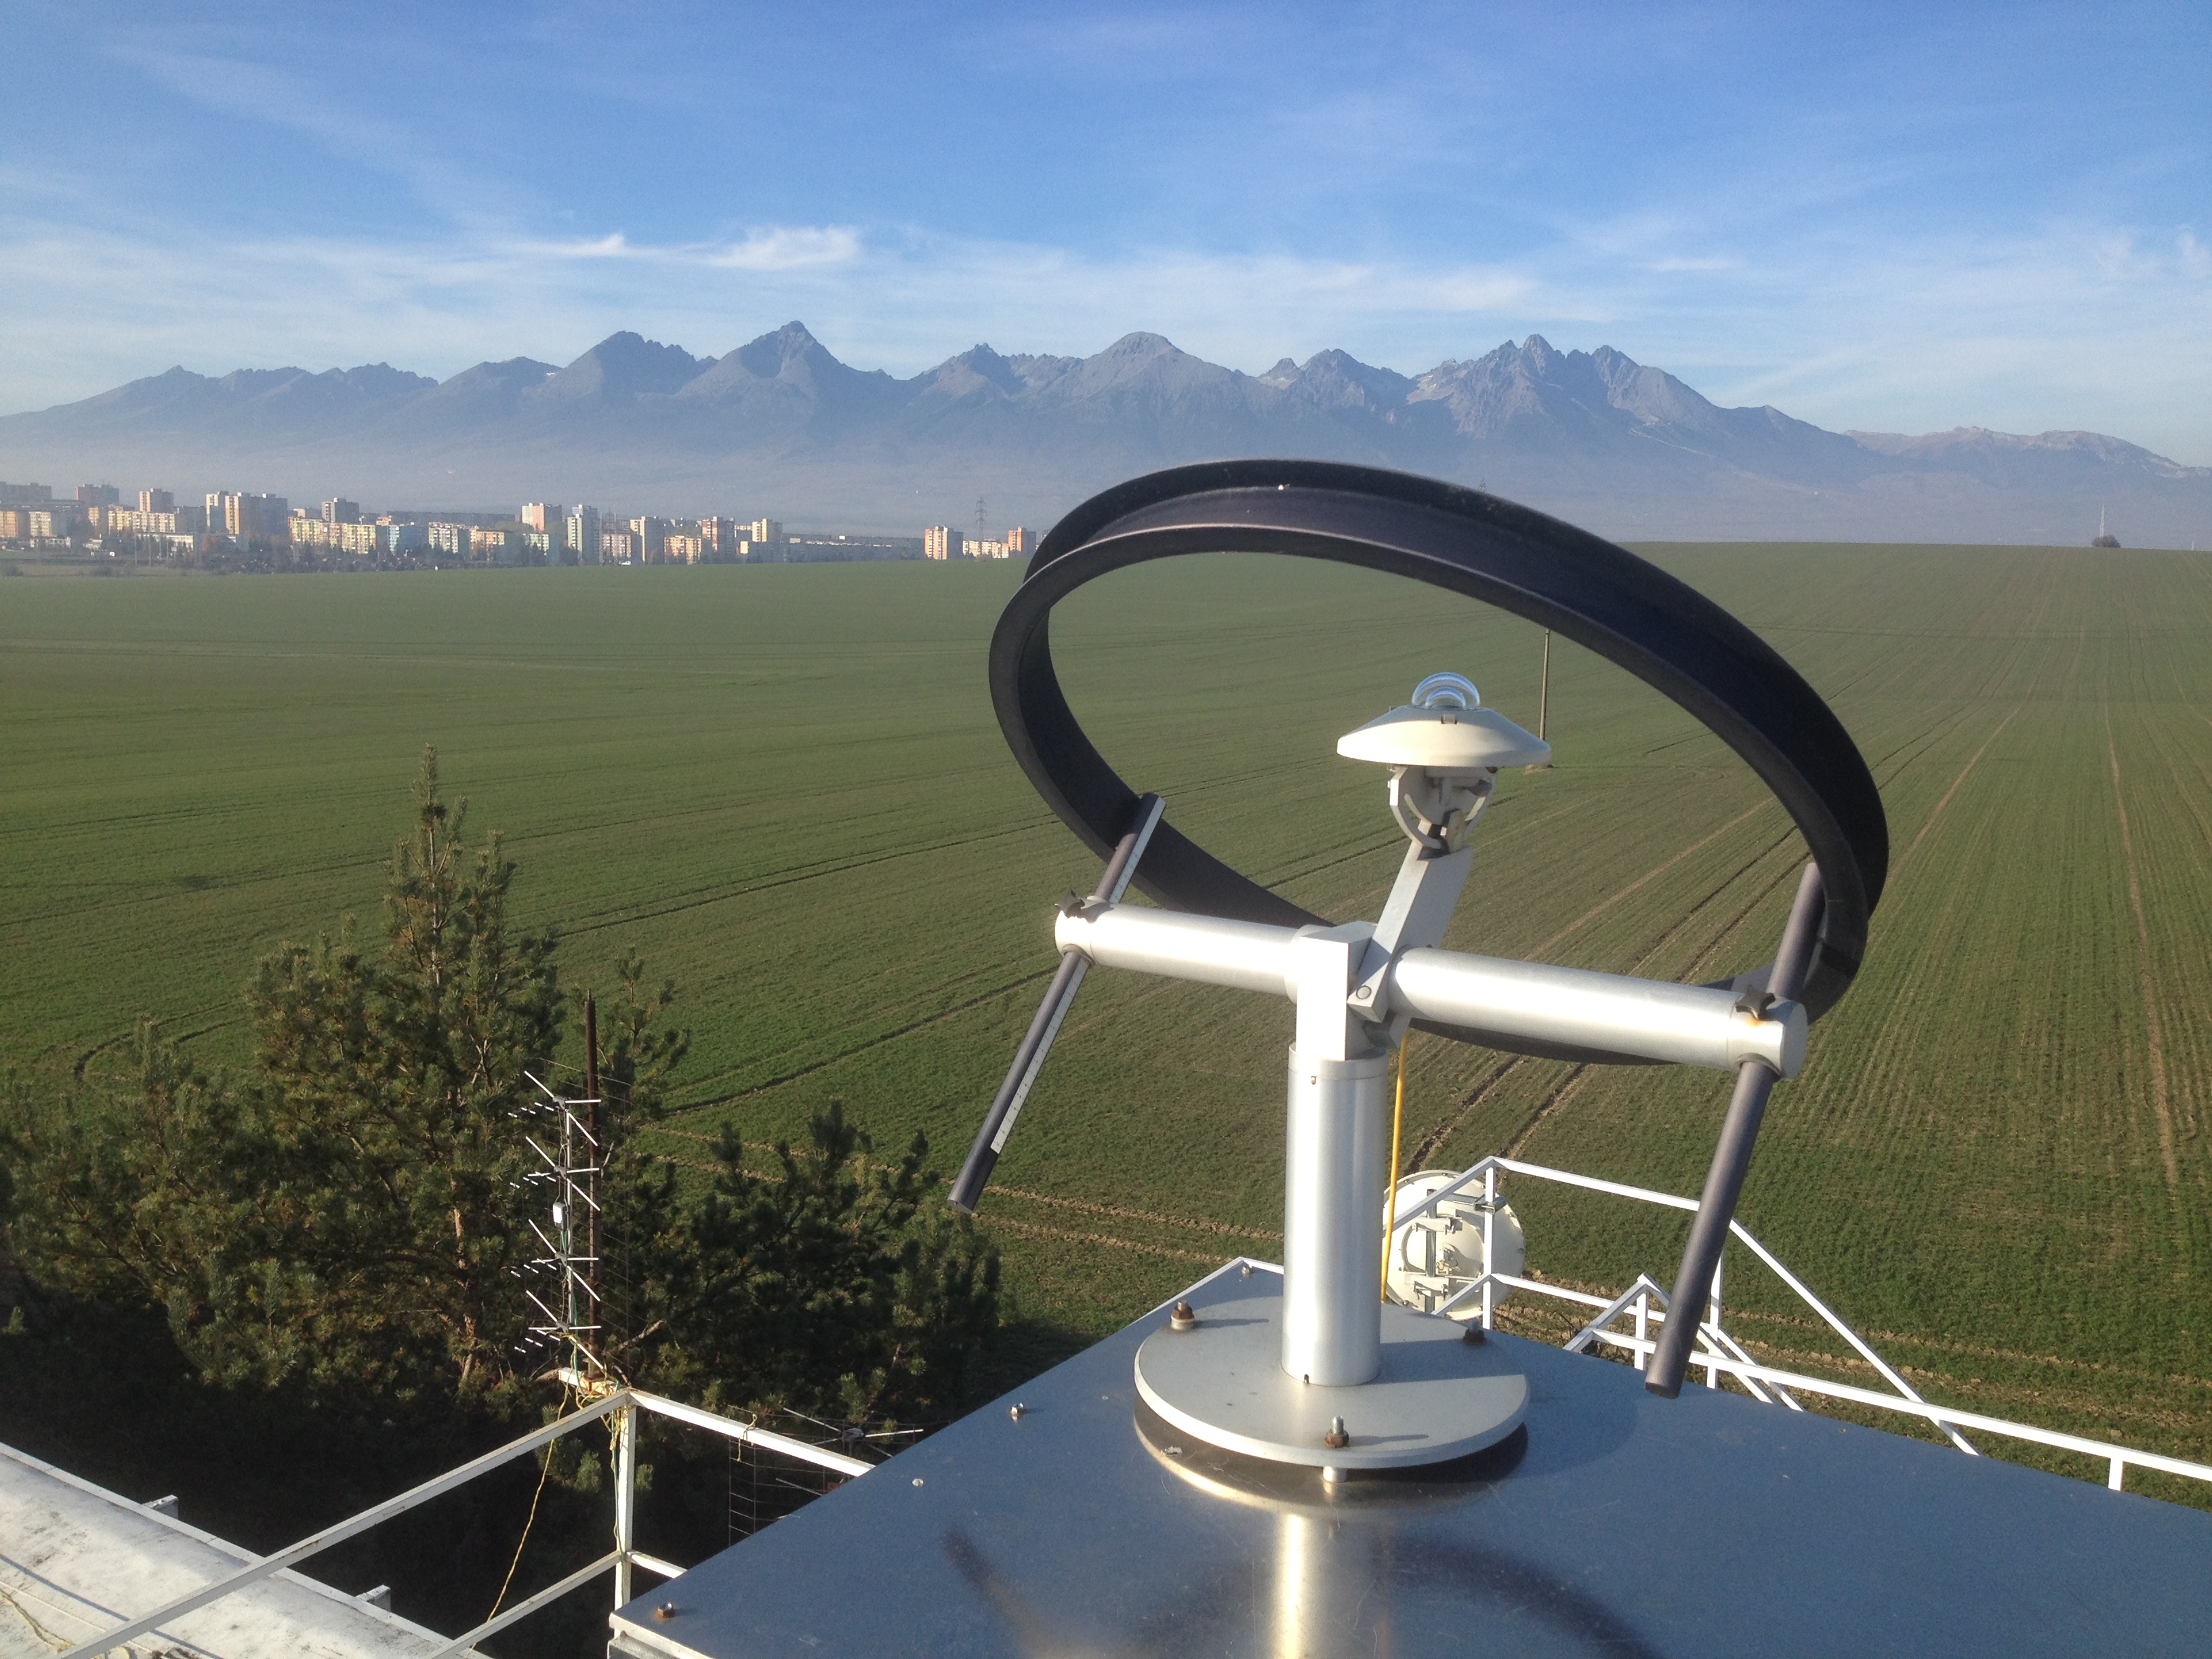 CMP pyranometer in Shadow Ring at Slovak Hydro-meteorological Office in Poprad-Ganovce